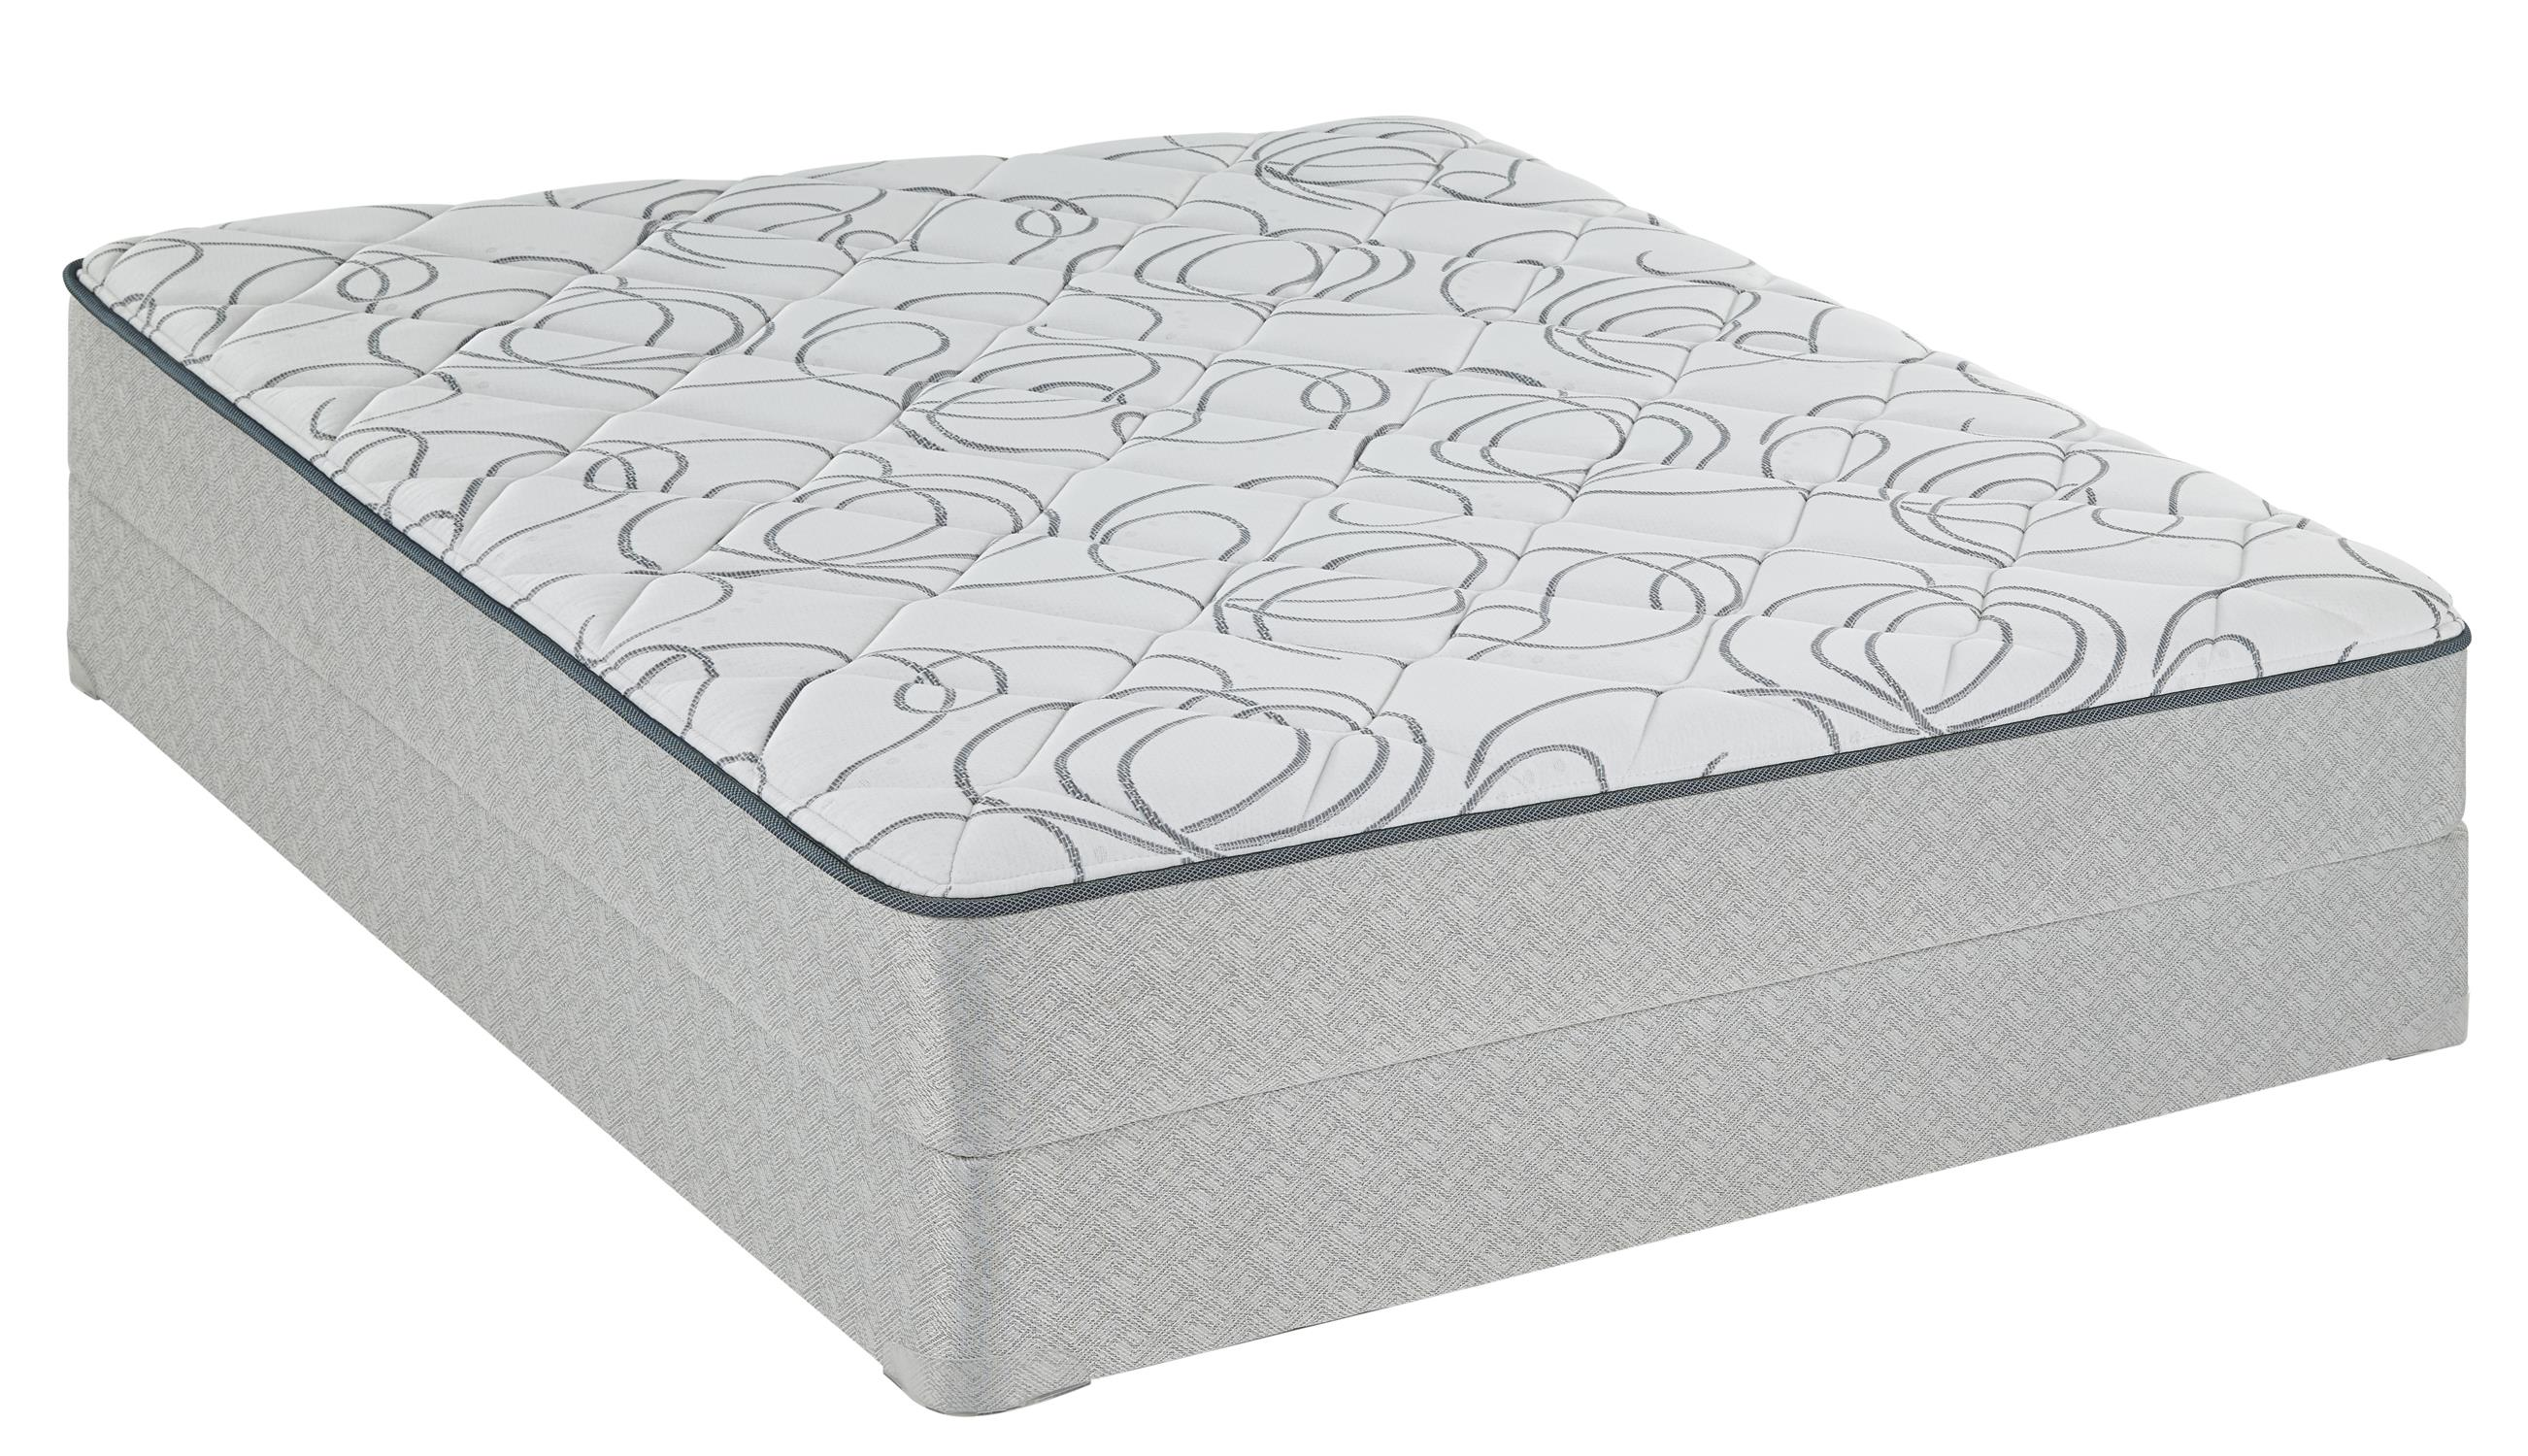 Sealy Turnbridge Twin Firm Mattress LP Set - Item Number: FirmTT-T+SBLPbox-T